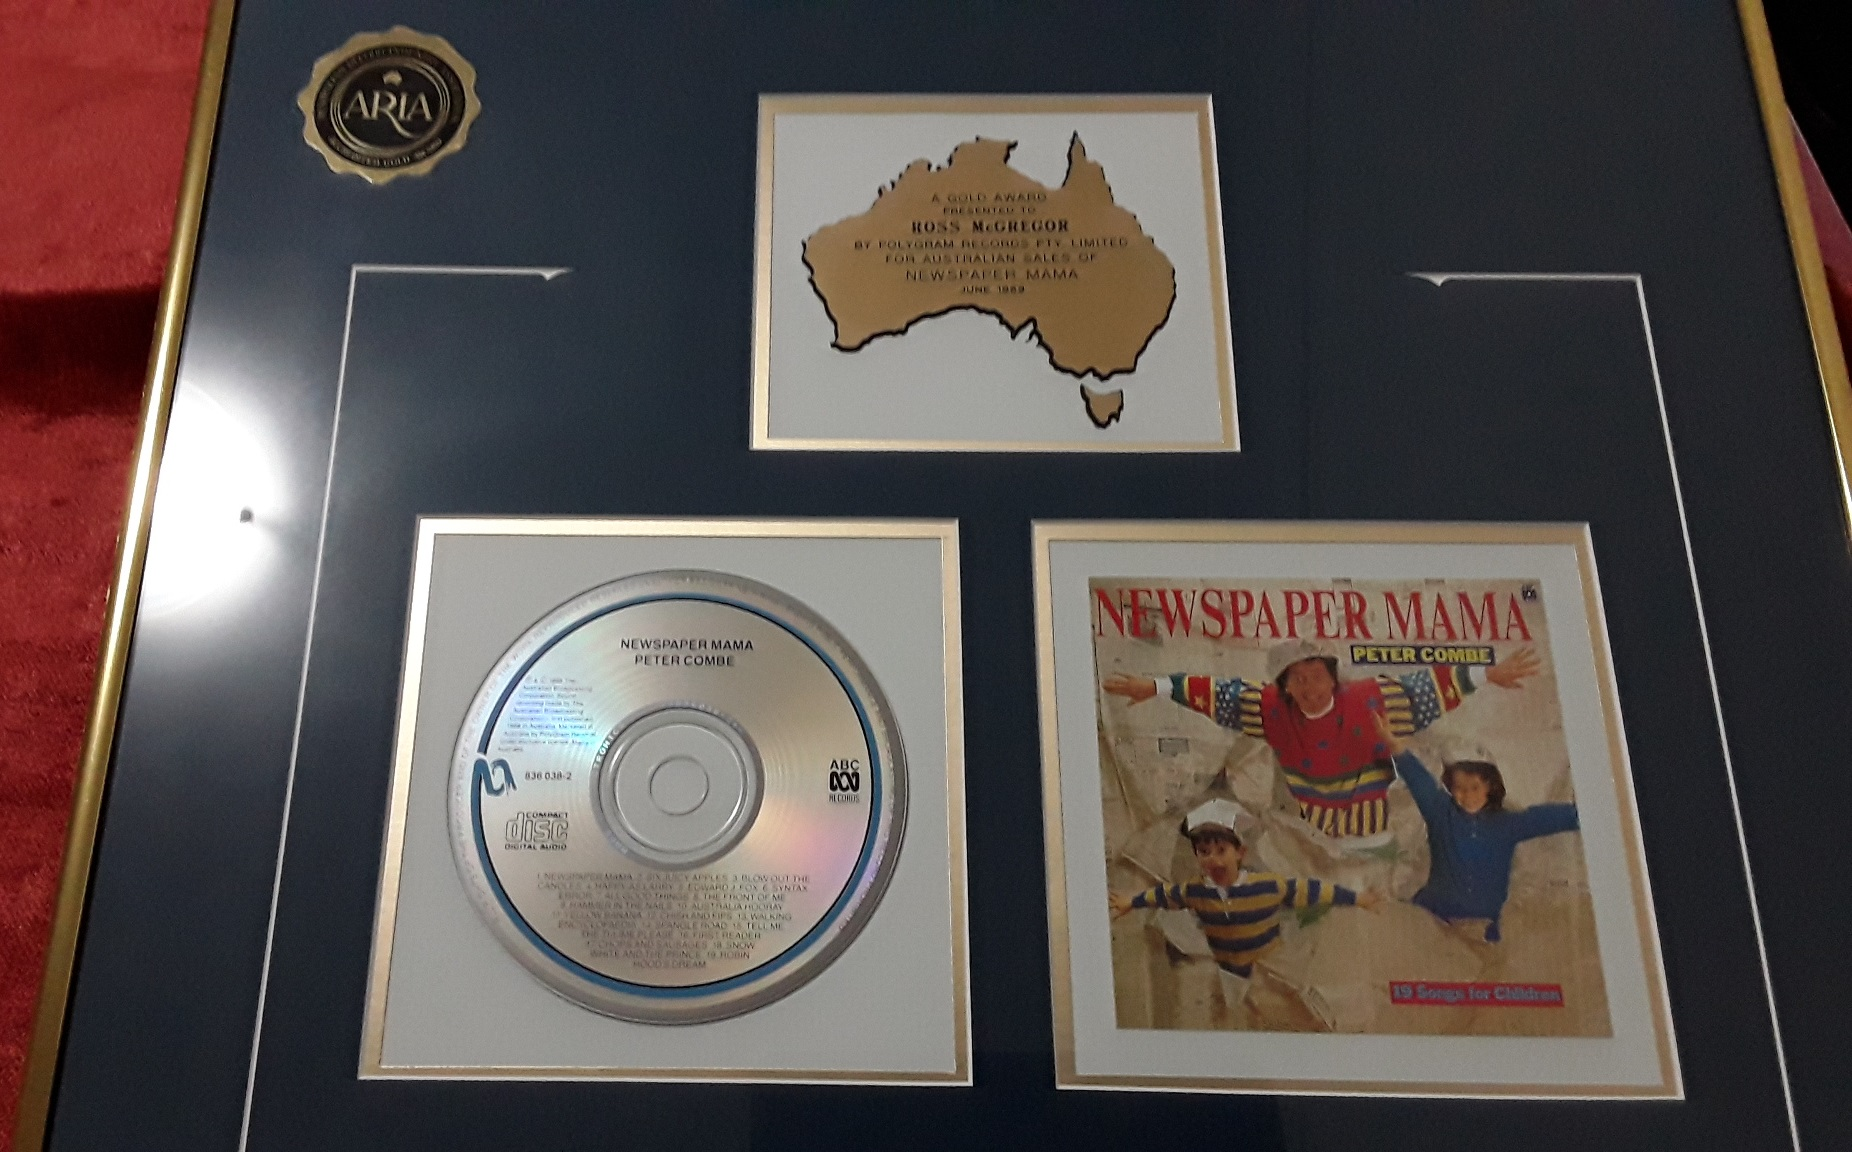 Gold Aria award to Ross for producing the Newspaper Mama album